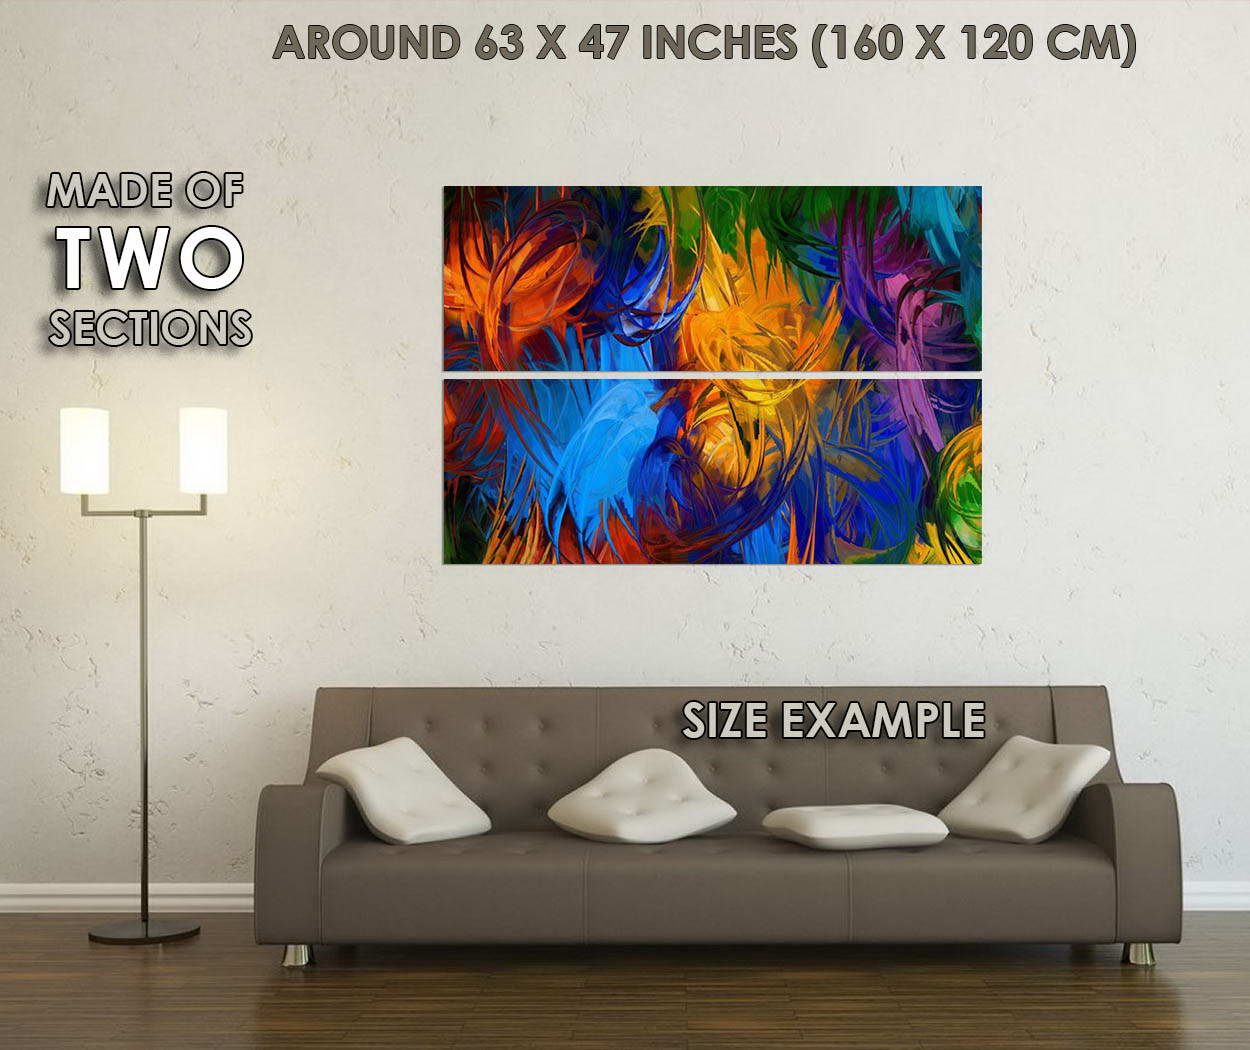 10700-Psychedelic-Trippy-Abstract-Art-LAMINATED-POSTER-CA thumbnail 6